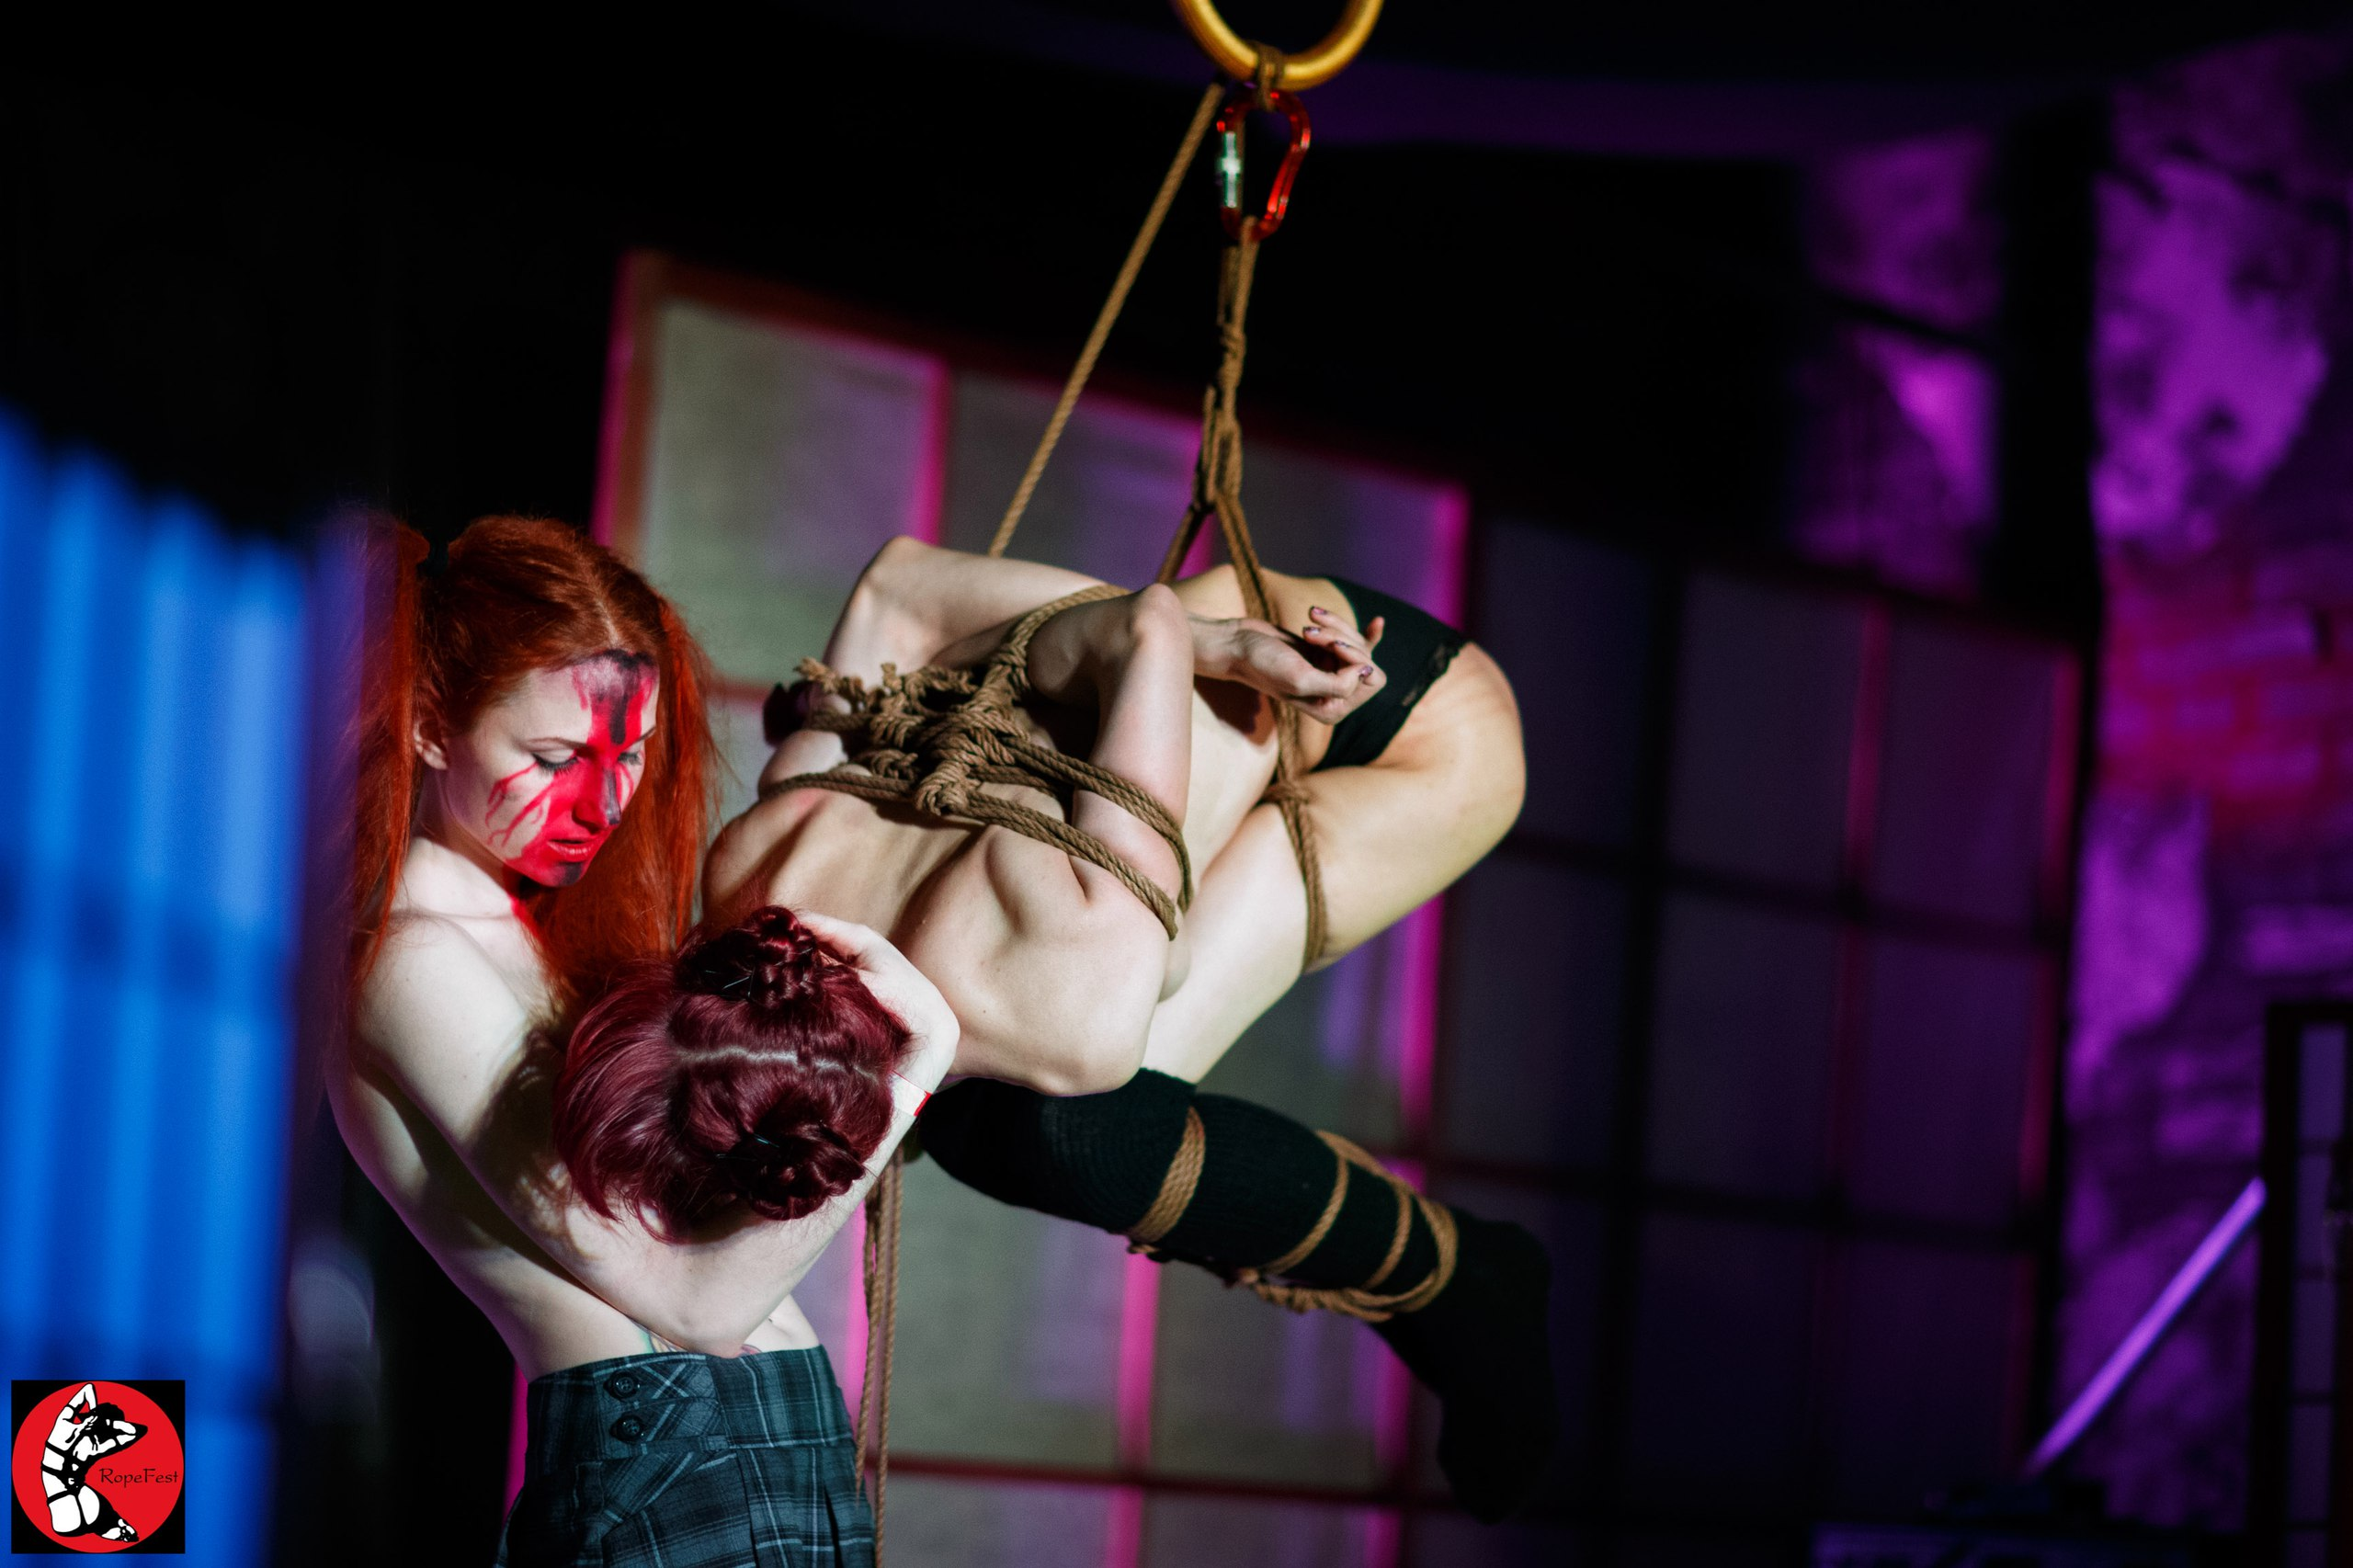 Rope Fest Peterburg . Bondage: Kiki. Photo by Alexey Efimov